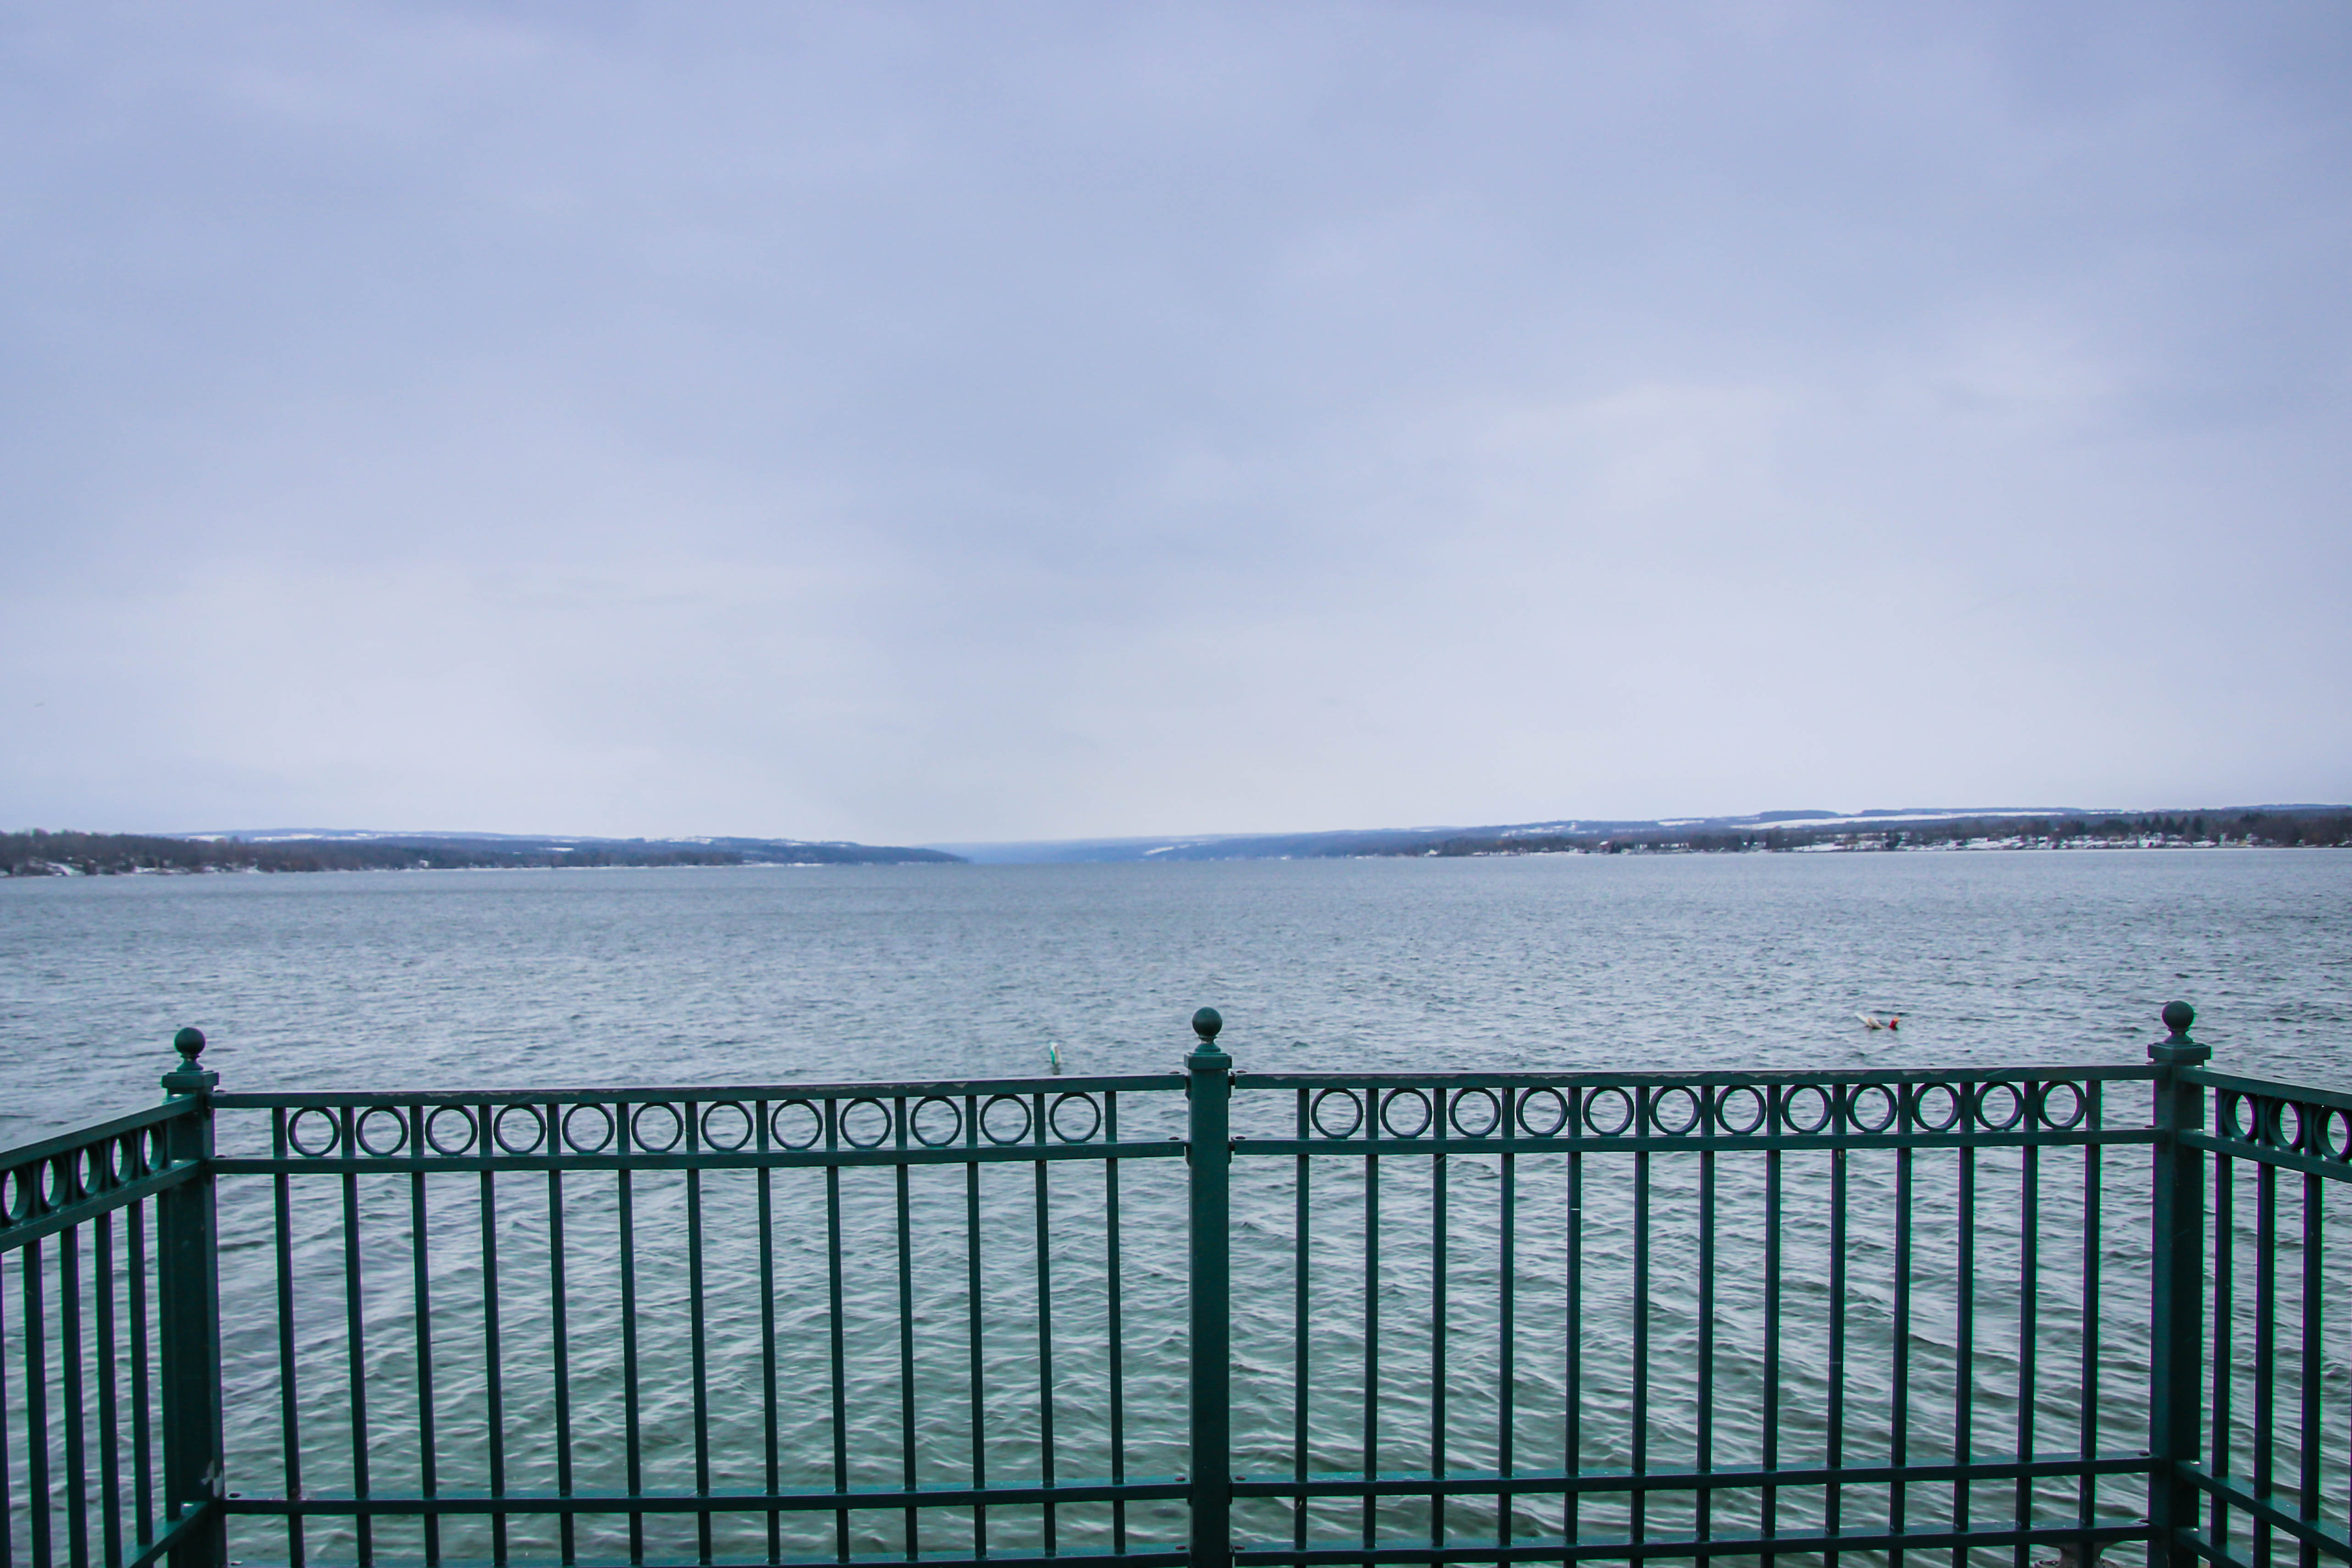 Lake view from the end of the pier